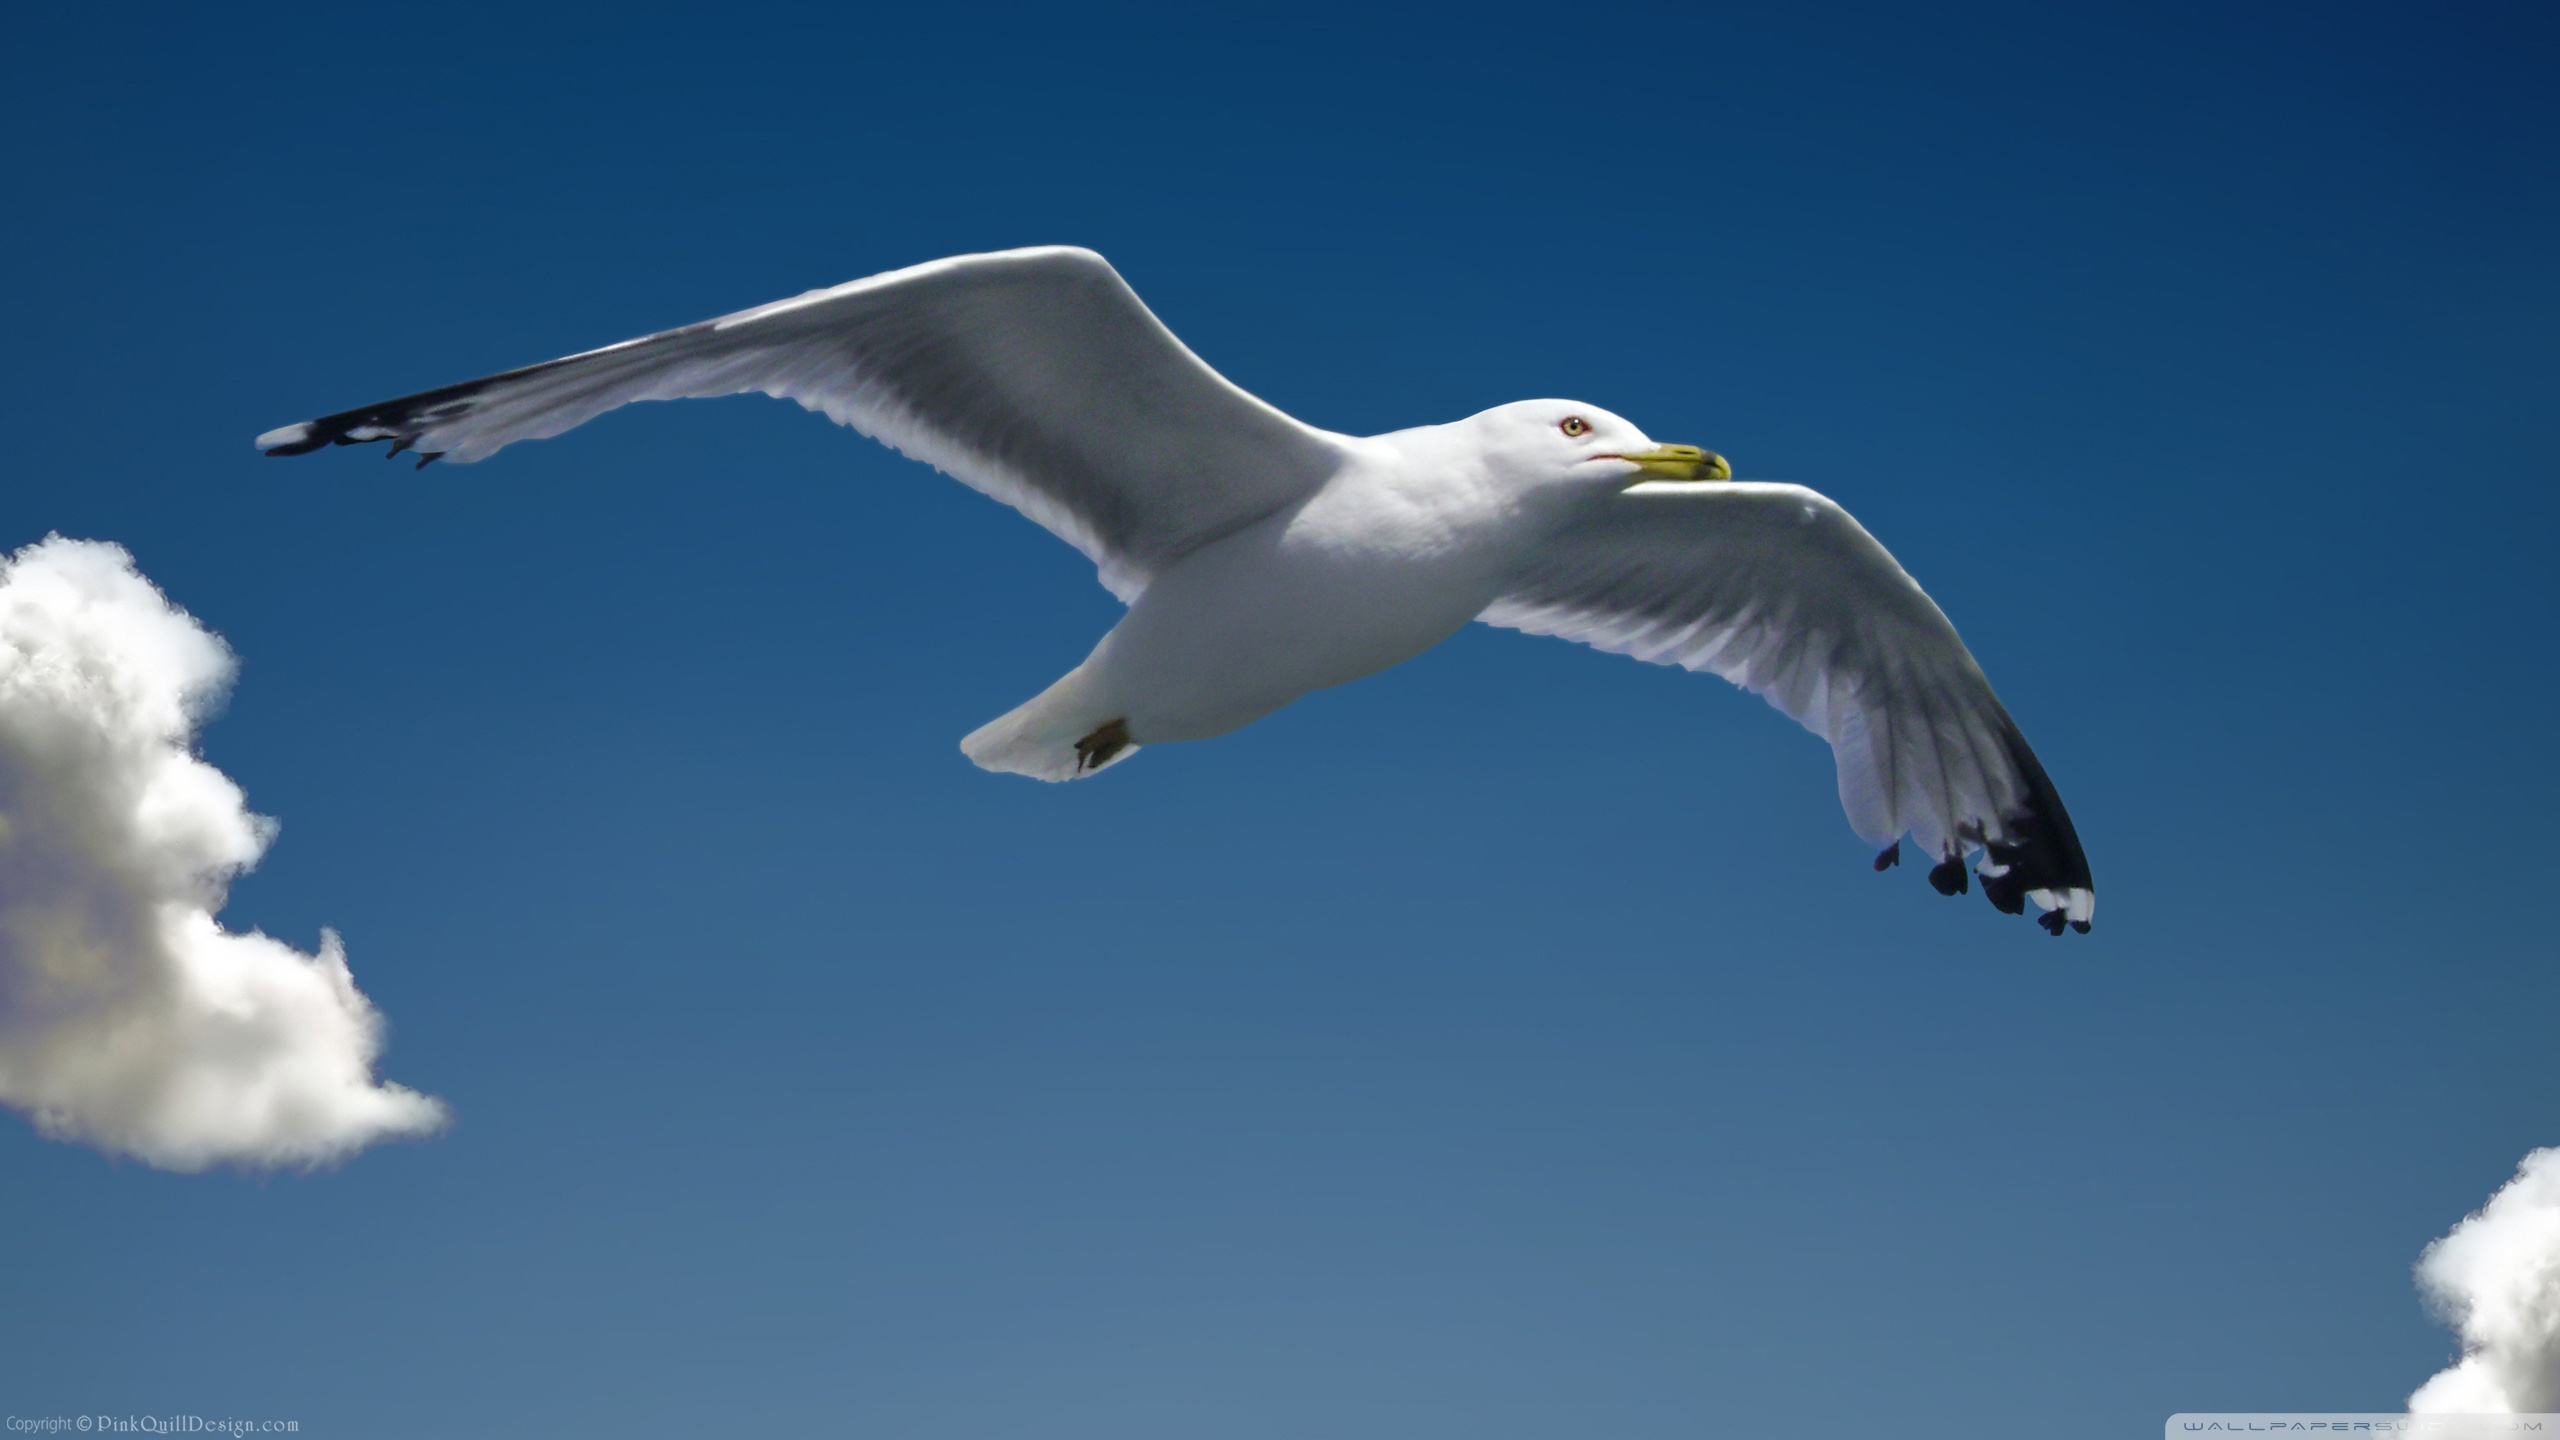 Seagull Pictures wallpaper 2560x1440 75038 2560x1440